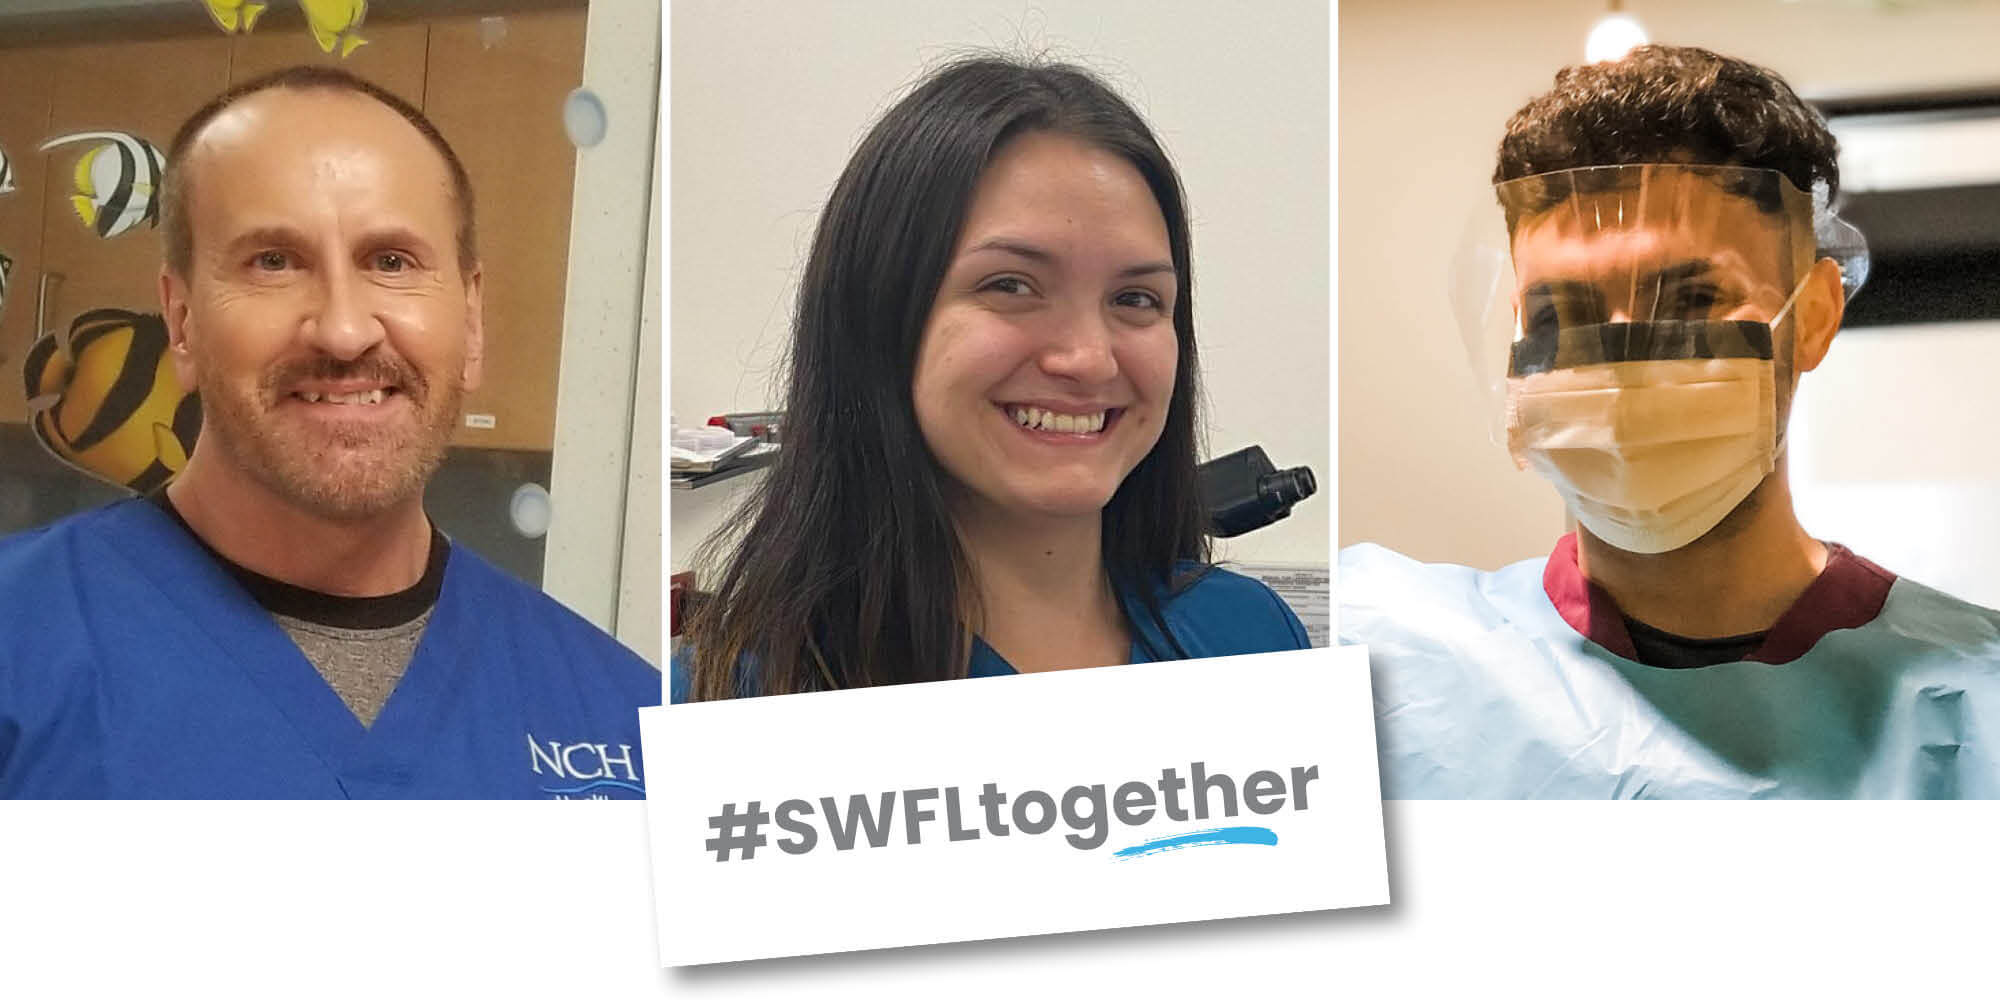 swfltogether-nurses-doctors